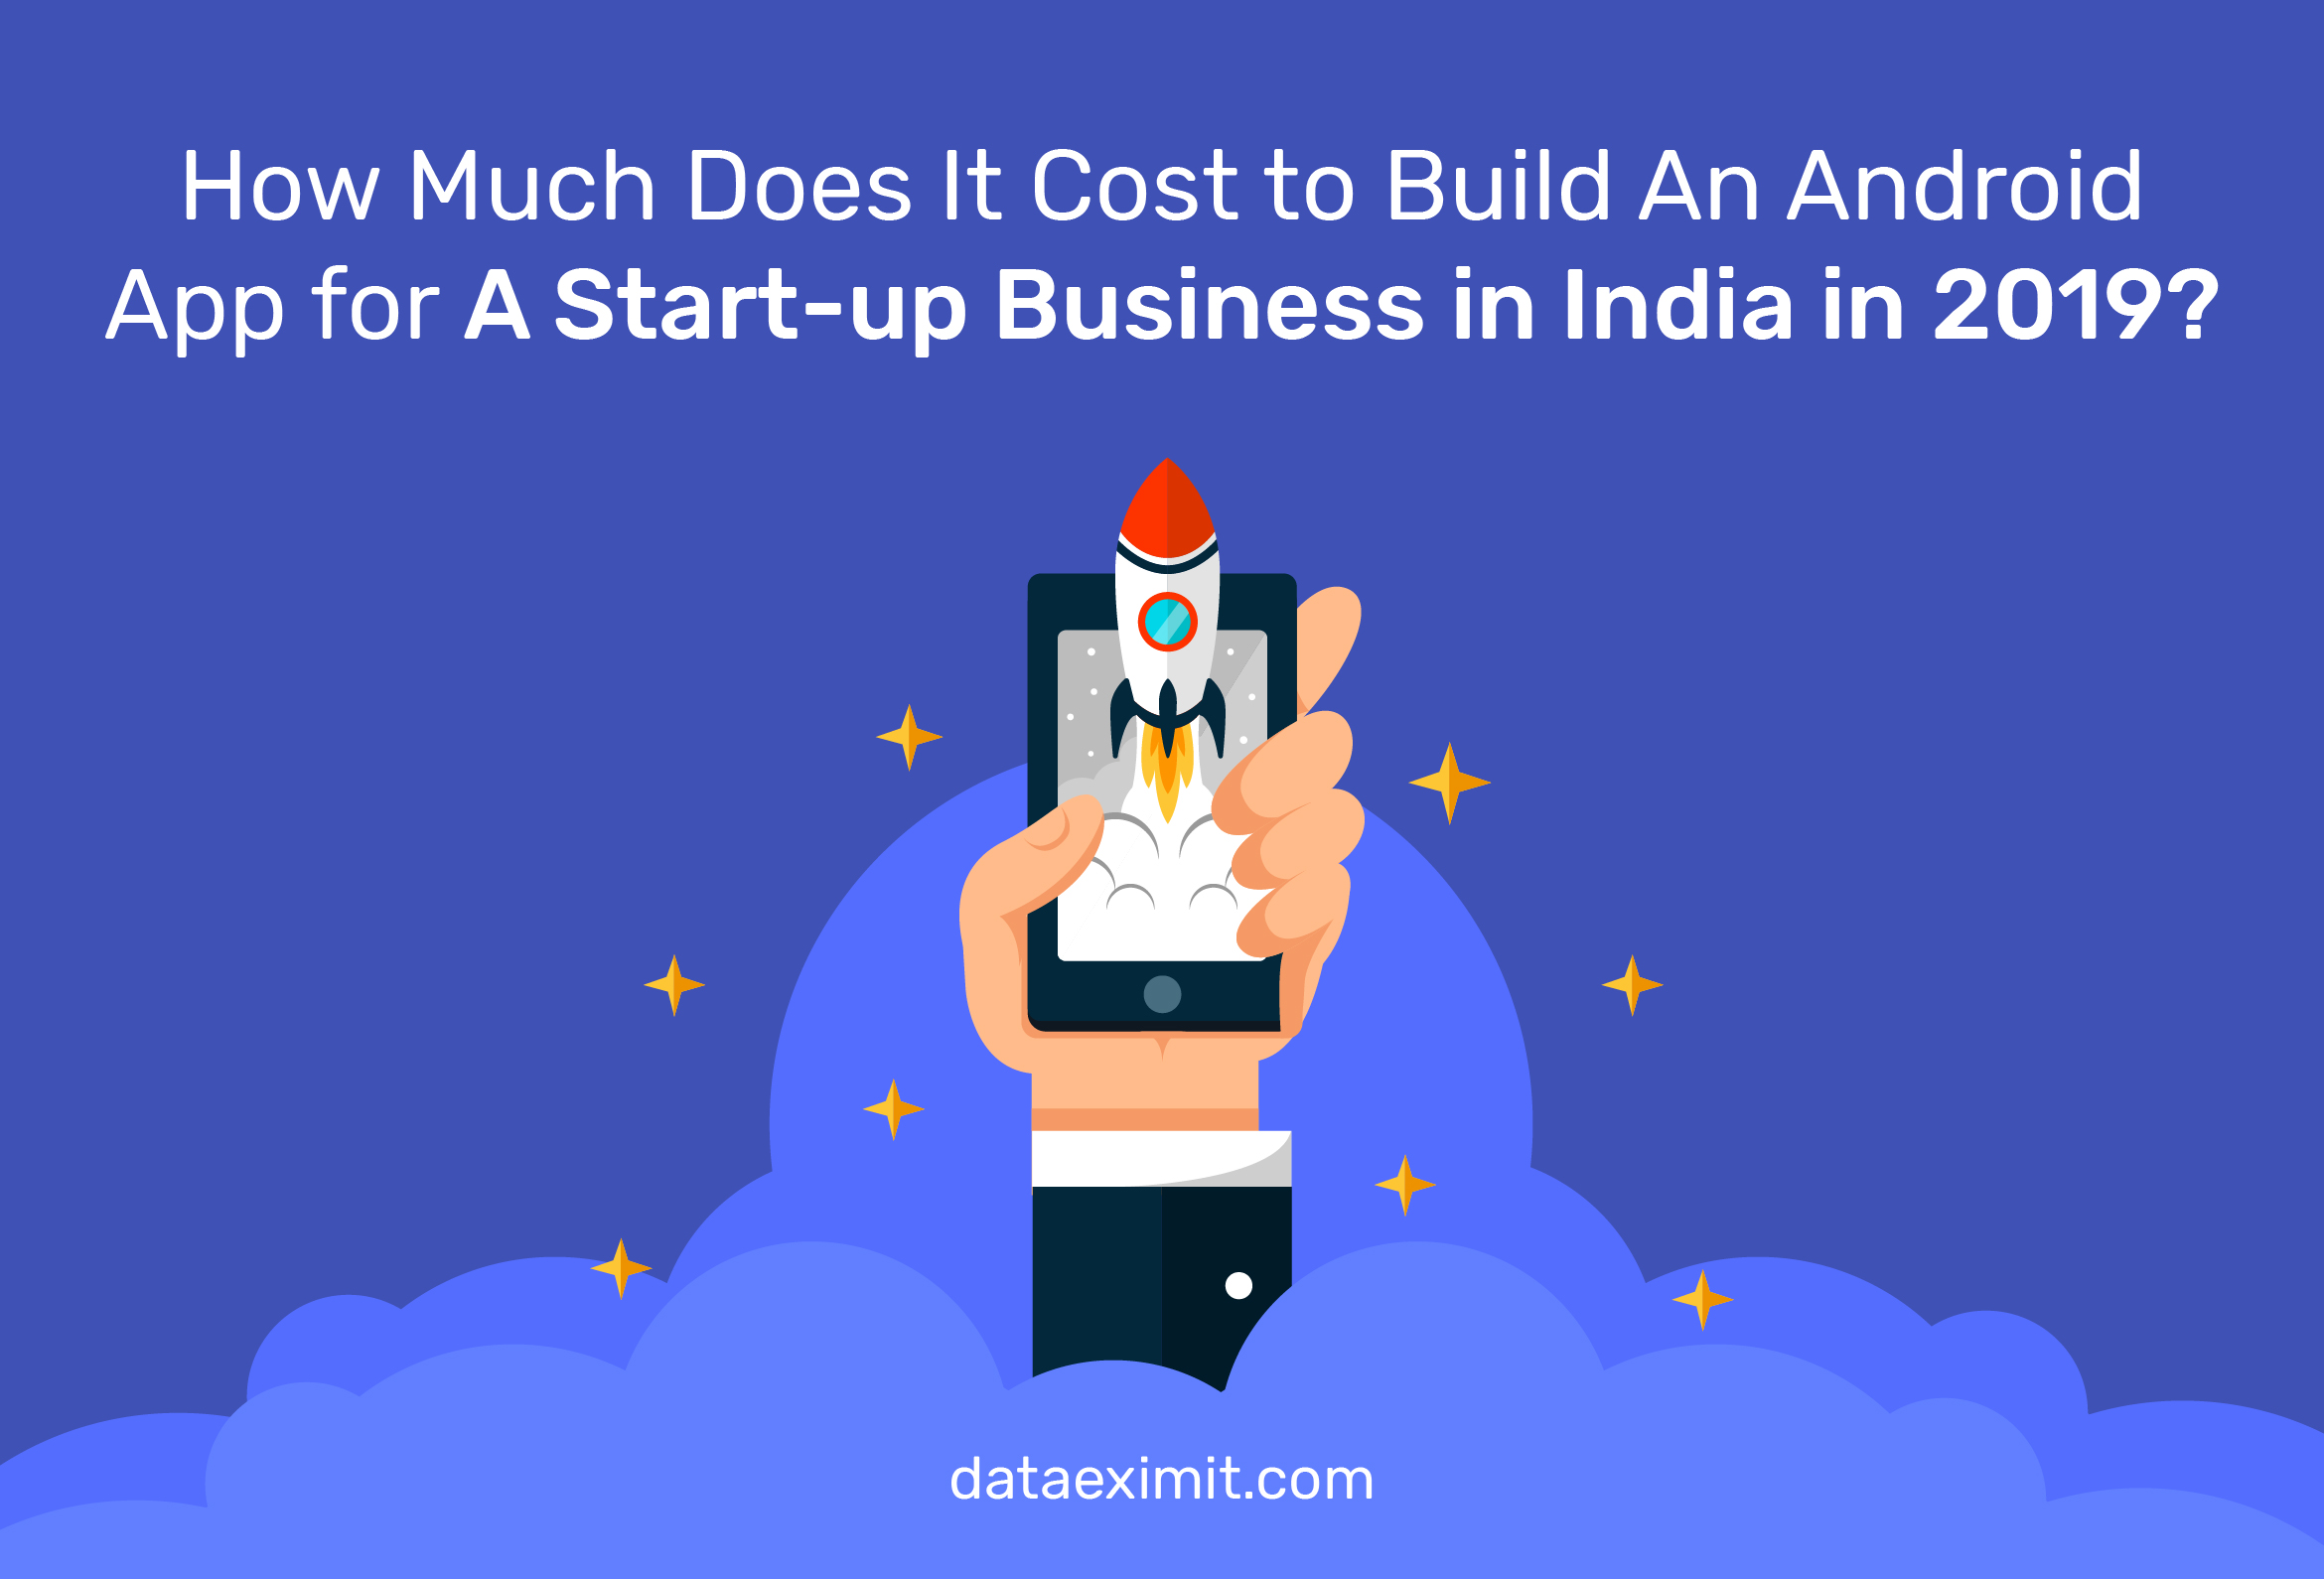 How Much Does It Cost to Build An Android App for A Start-up Business in India in 2019?